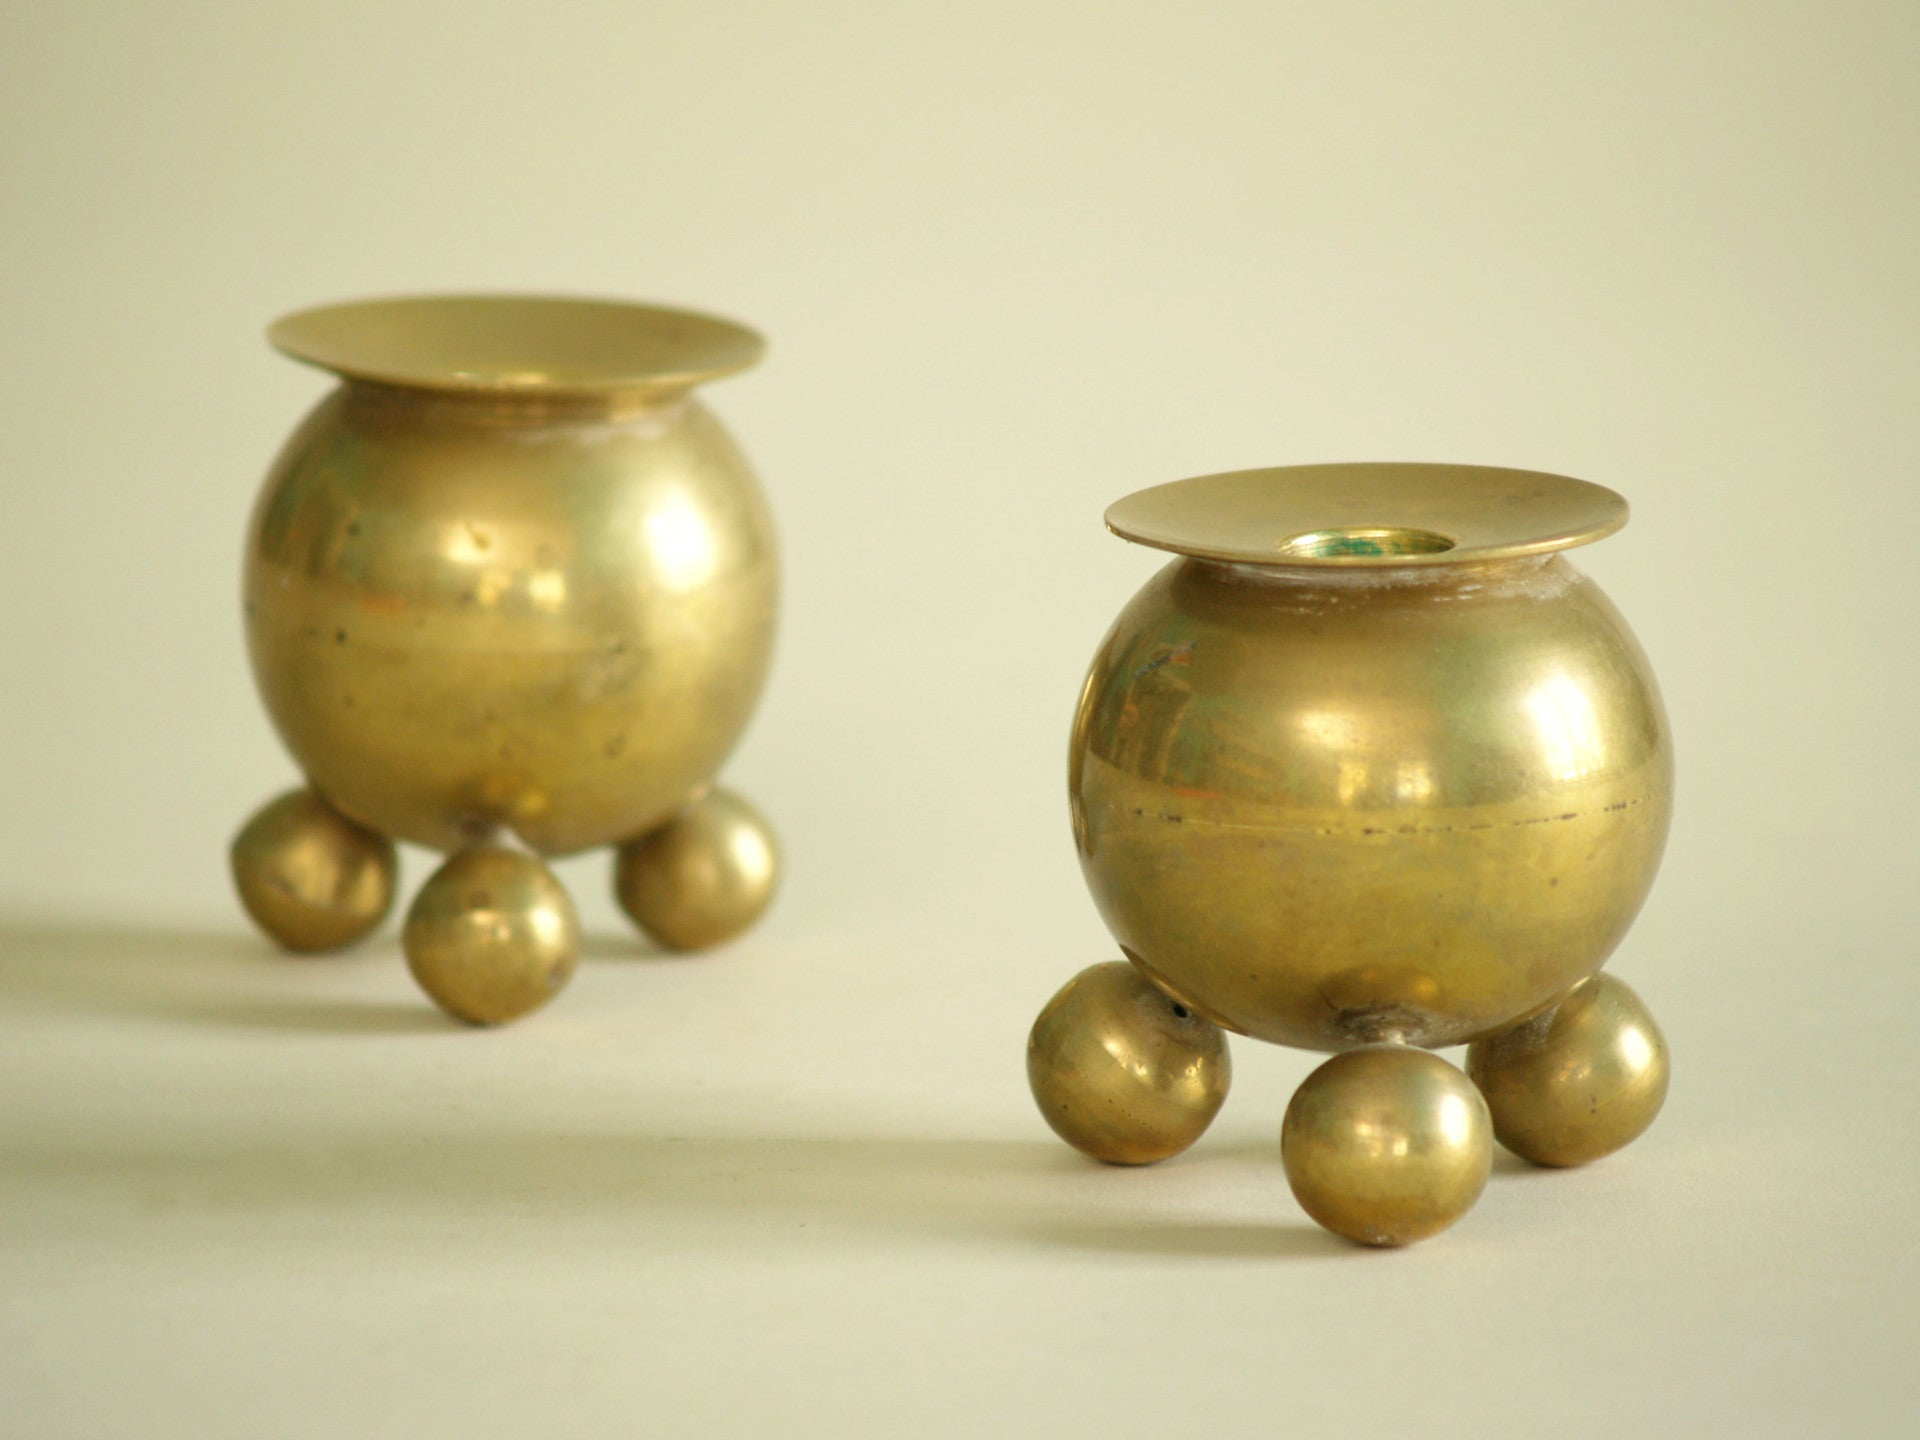 Paire de bougeoirs par Gusum Bruk, Suède (vers 1900)..Pair of candle holders by Gusum Bruk, Sweden (circa 1900)